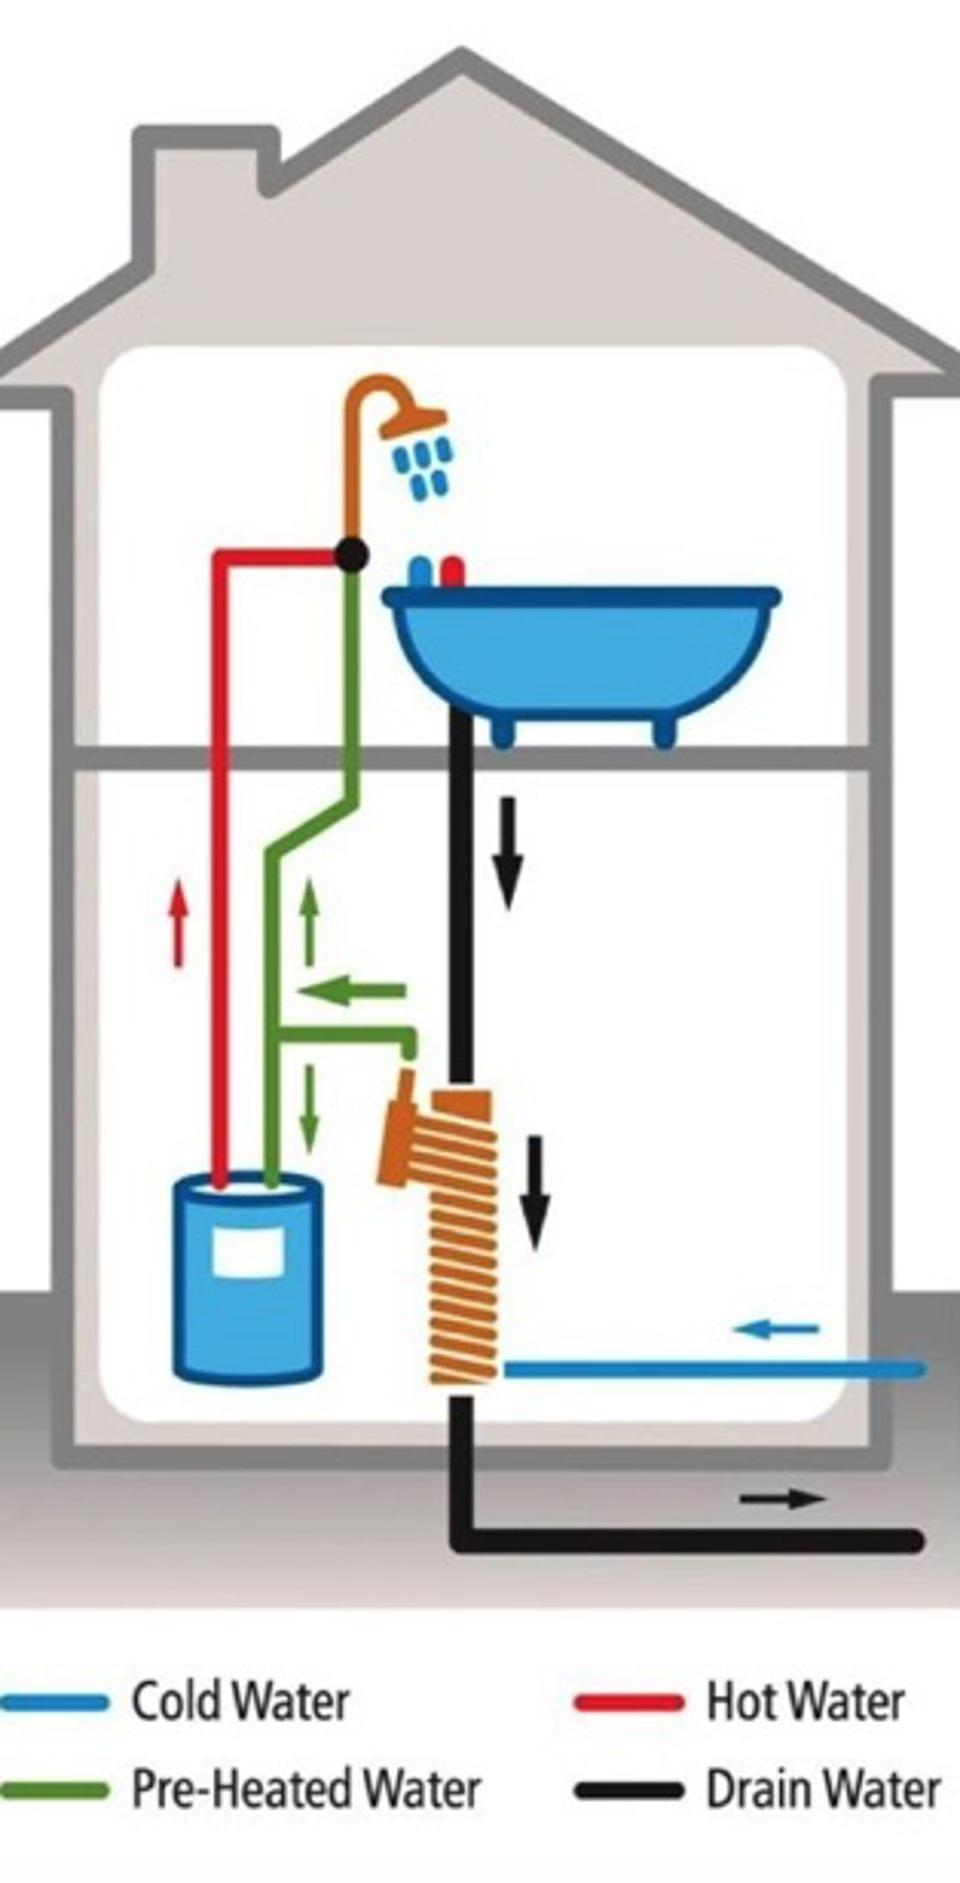 Another diagram showing this simple system of recycling the energy from the warm water used for showering.